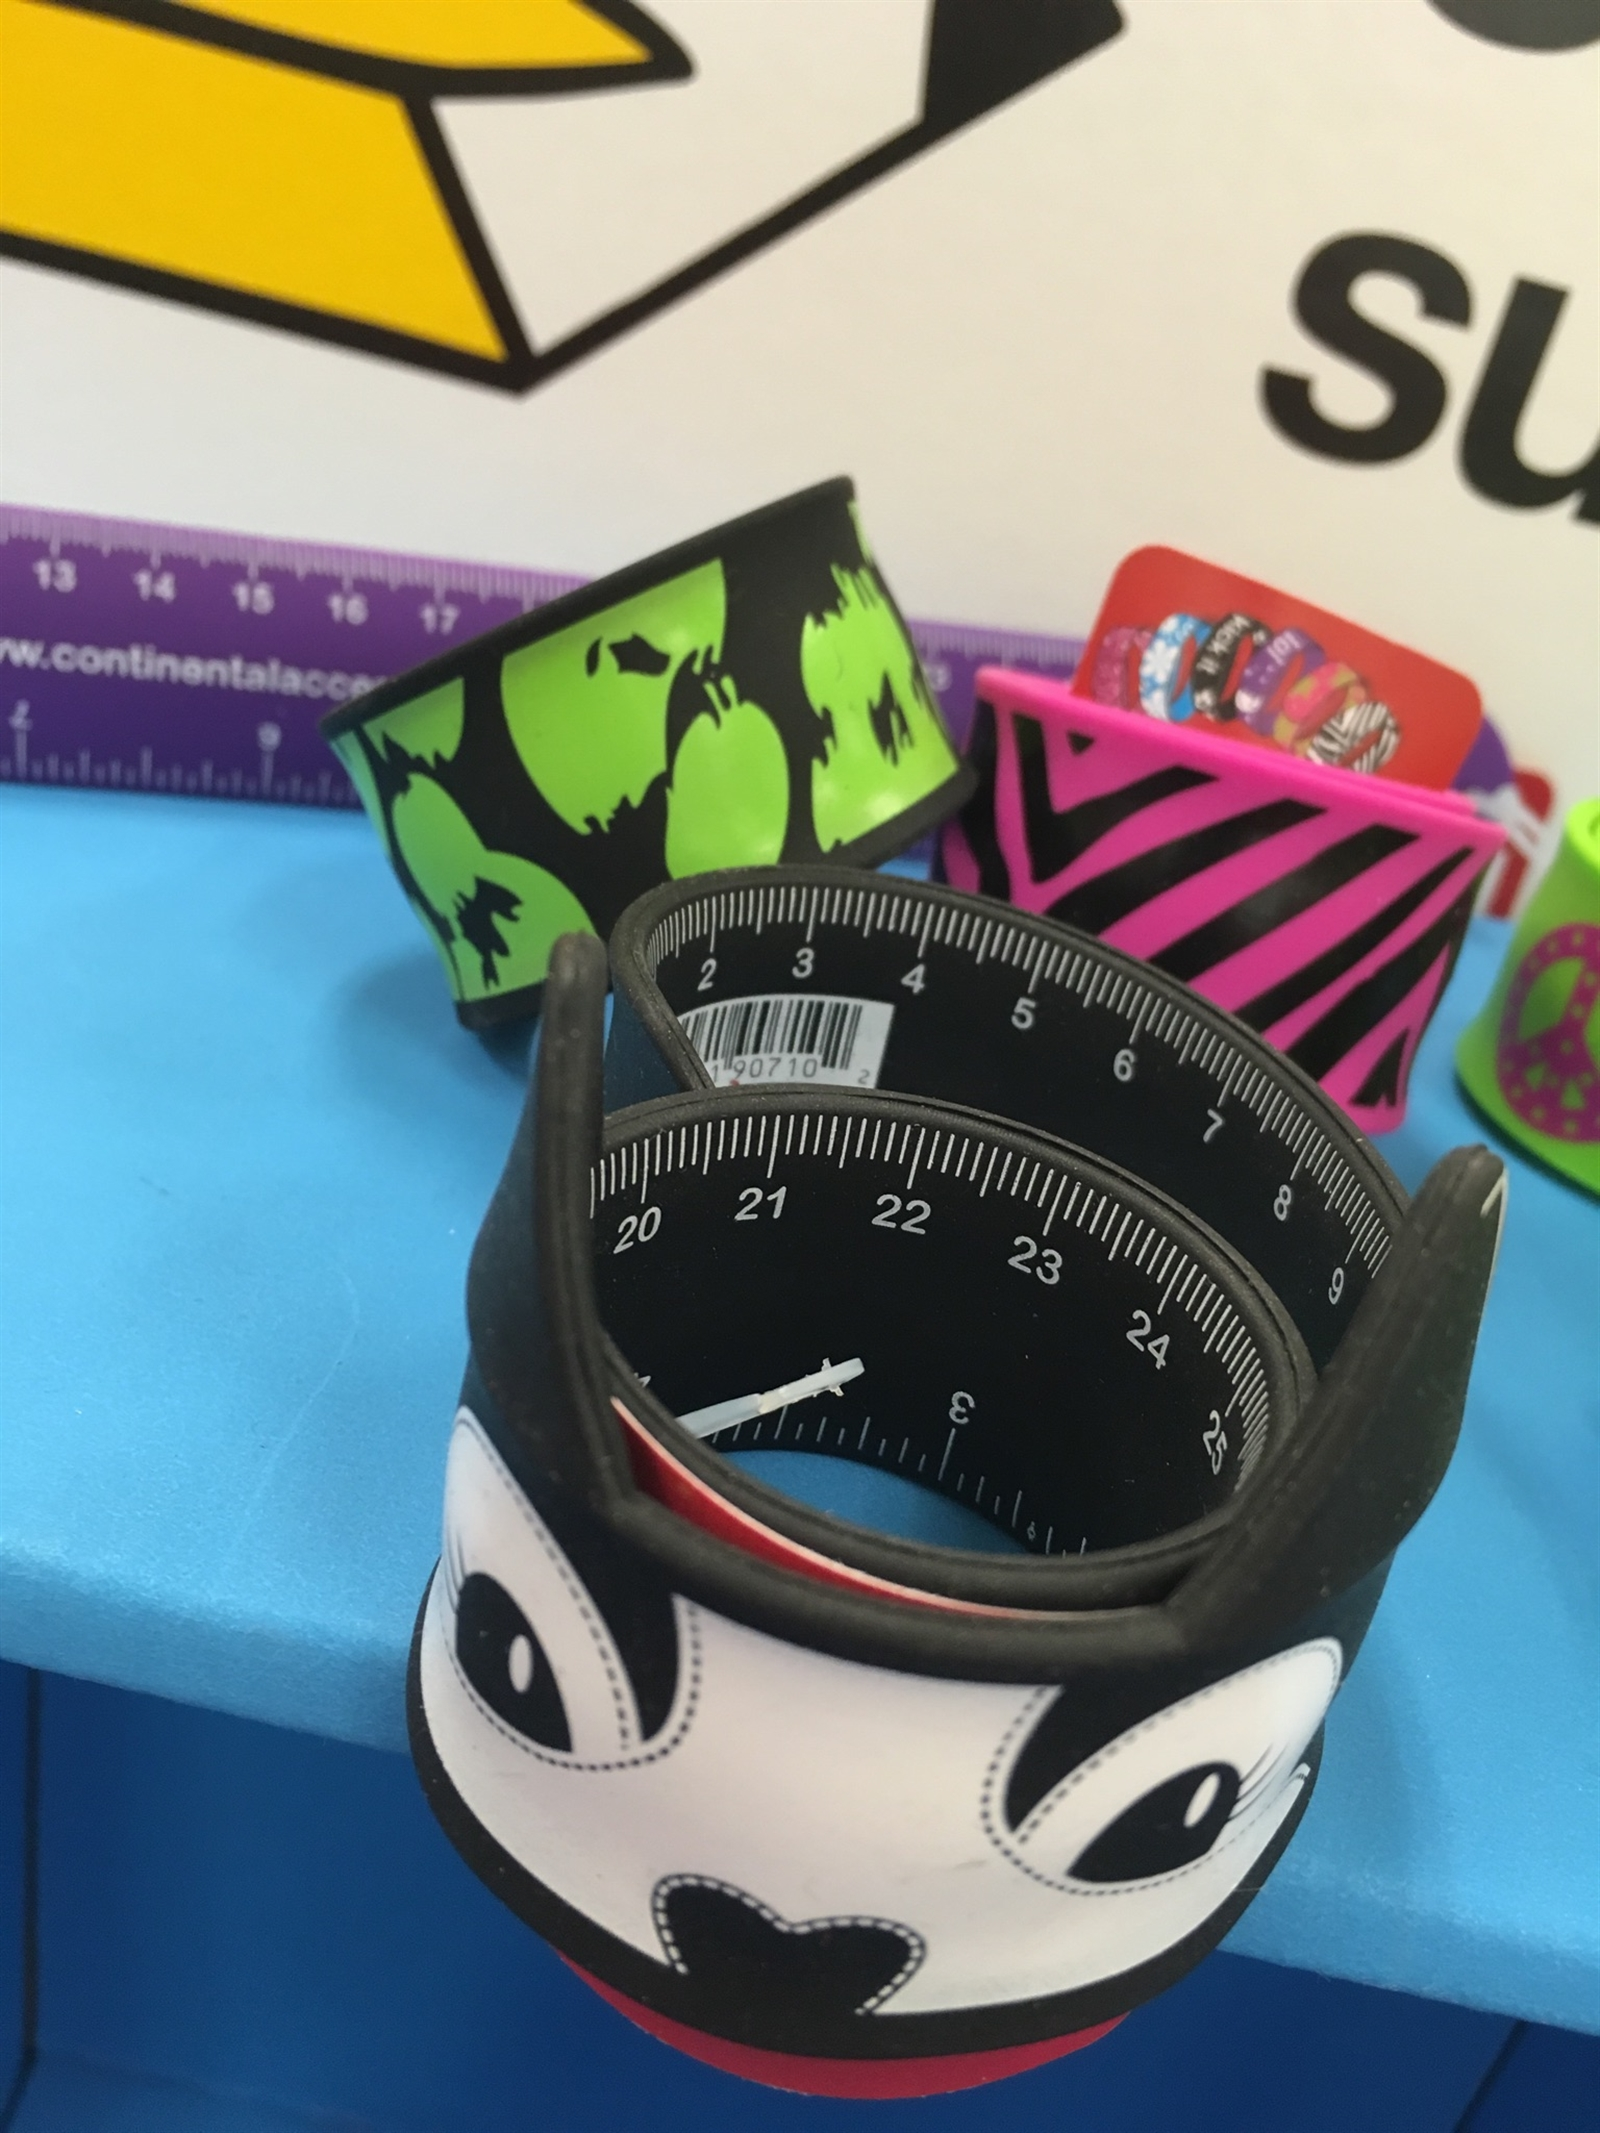 Rulers that are also slap bracelets. If watching six-second Vine videos and communicating via 10-second Snapchats didn't shorten your attention span enough, these should provide sufficient distraction.